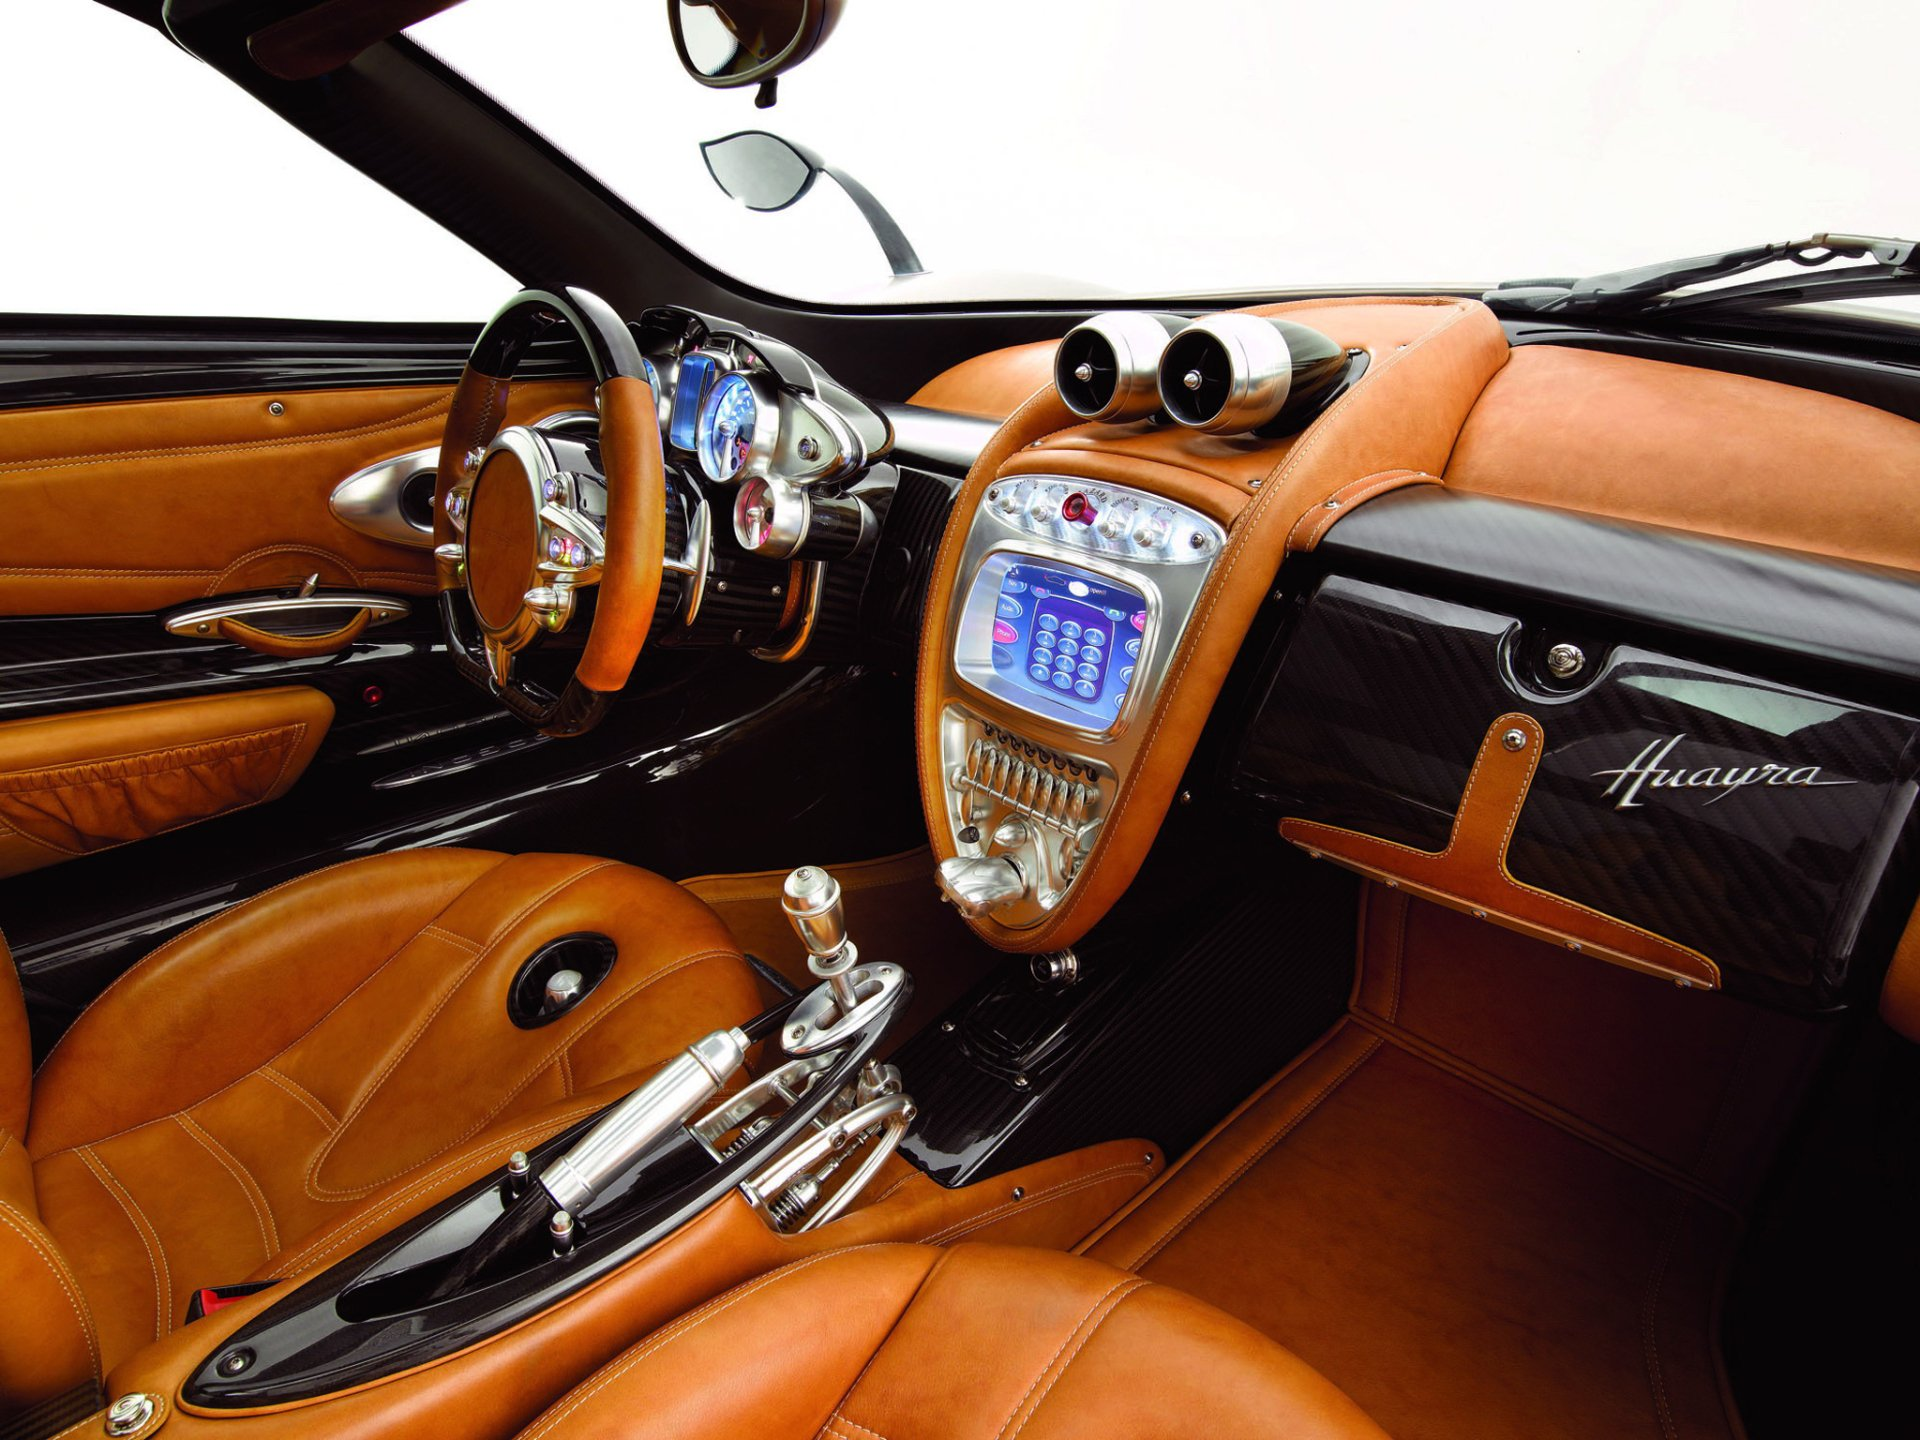 Vehicles - Pagani Huayra  Pagani Supercar Car Vehicle Wallpaper